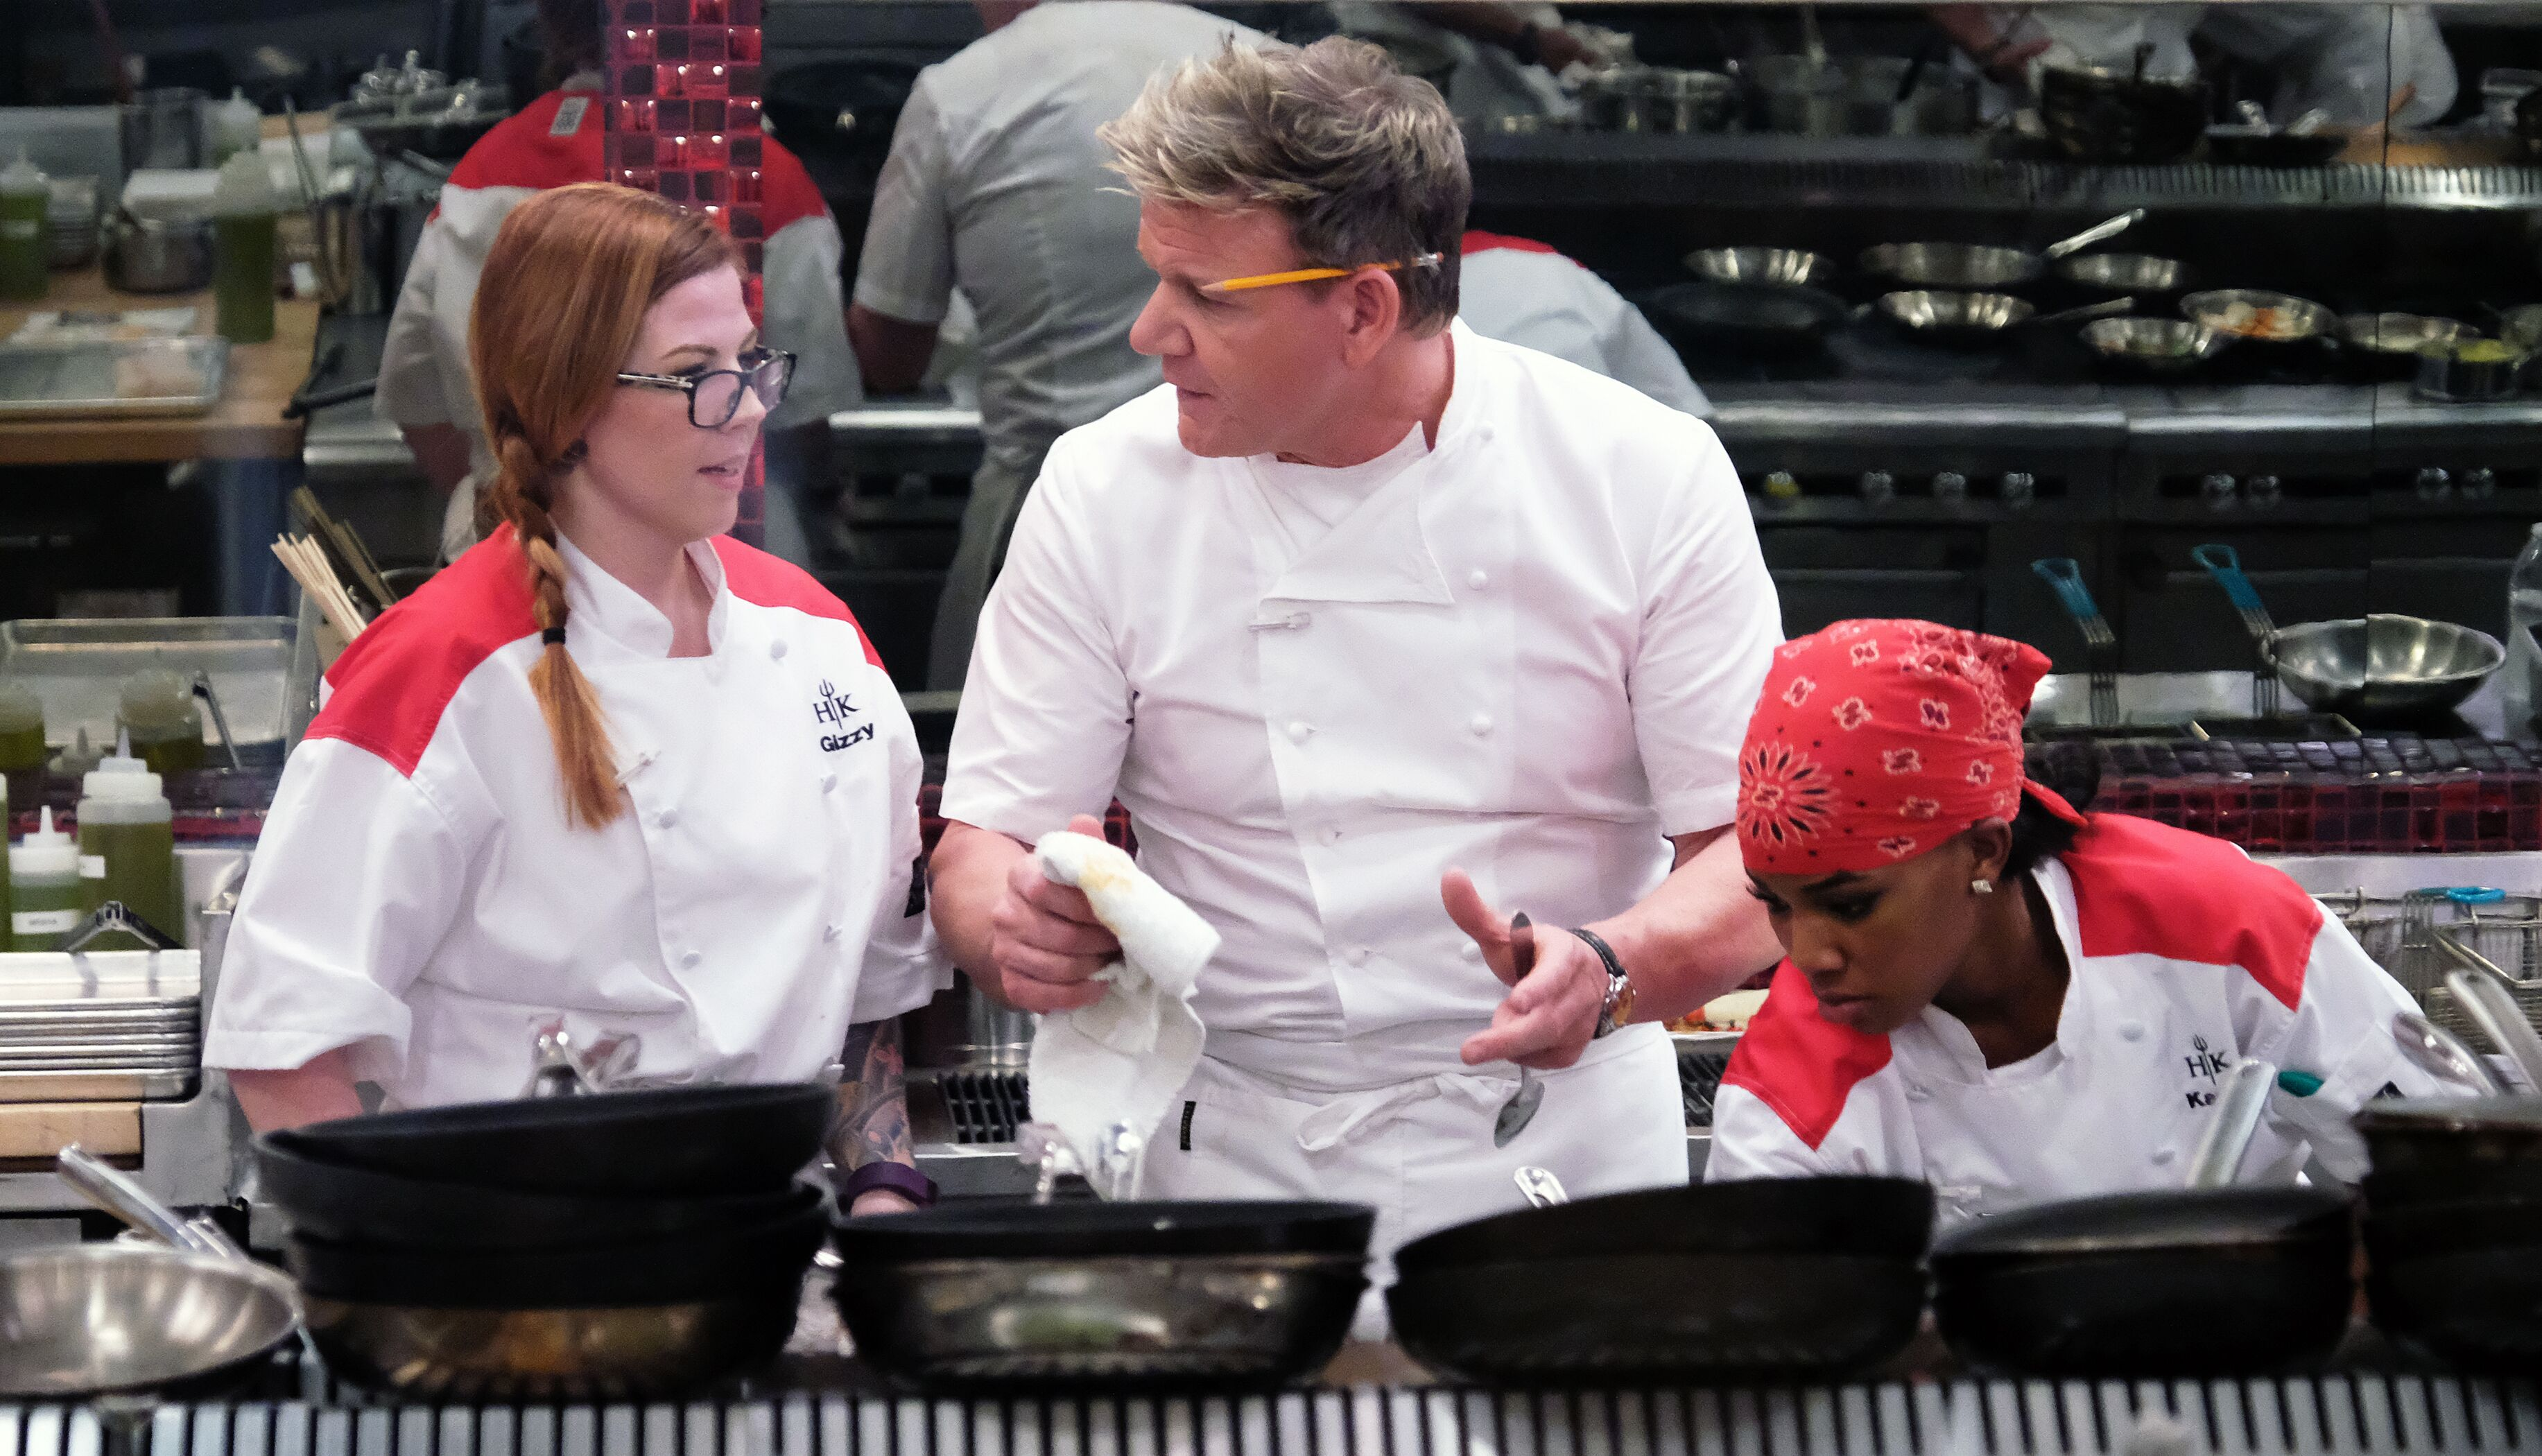 hells kitchen season 18 episode 3 preview gizzy cant cook fish - Hells Kitchen Season 18